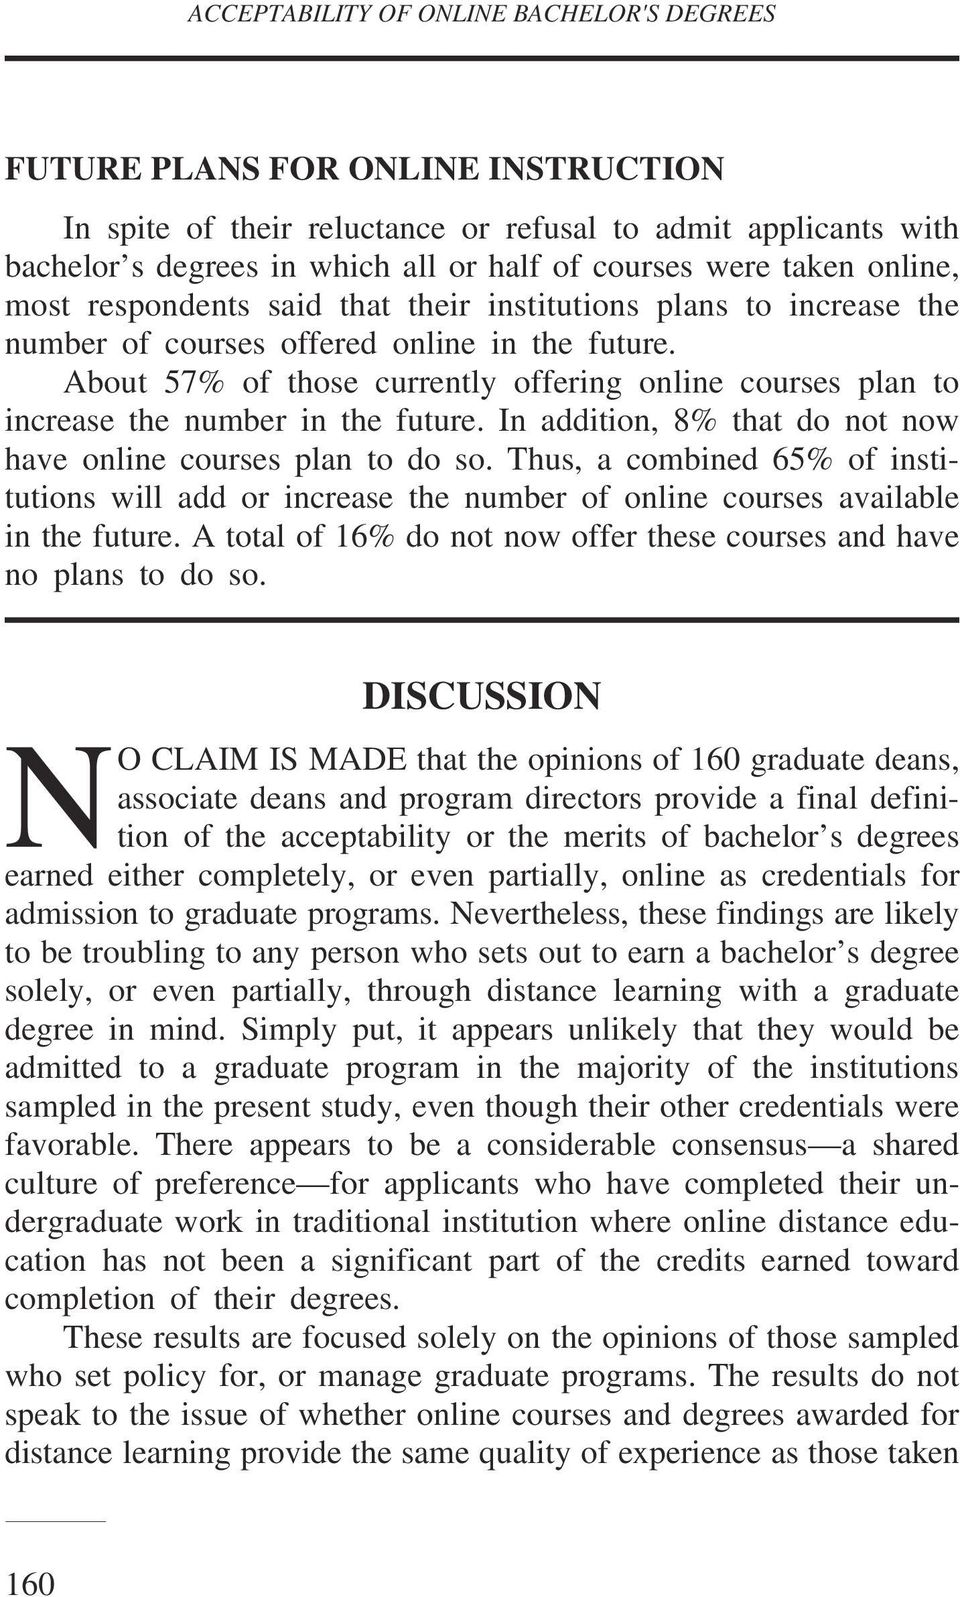 About 57% of those currently offering online courses plan to increase the number in the future. In addition, 8% that do not now have online courses plan to do so.